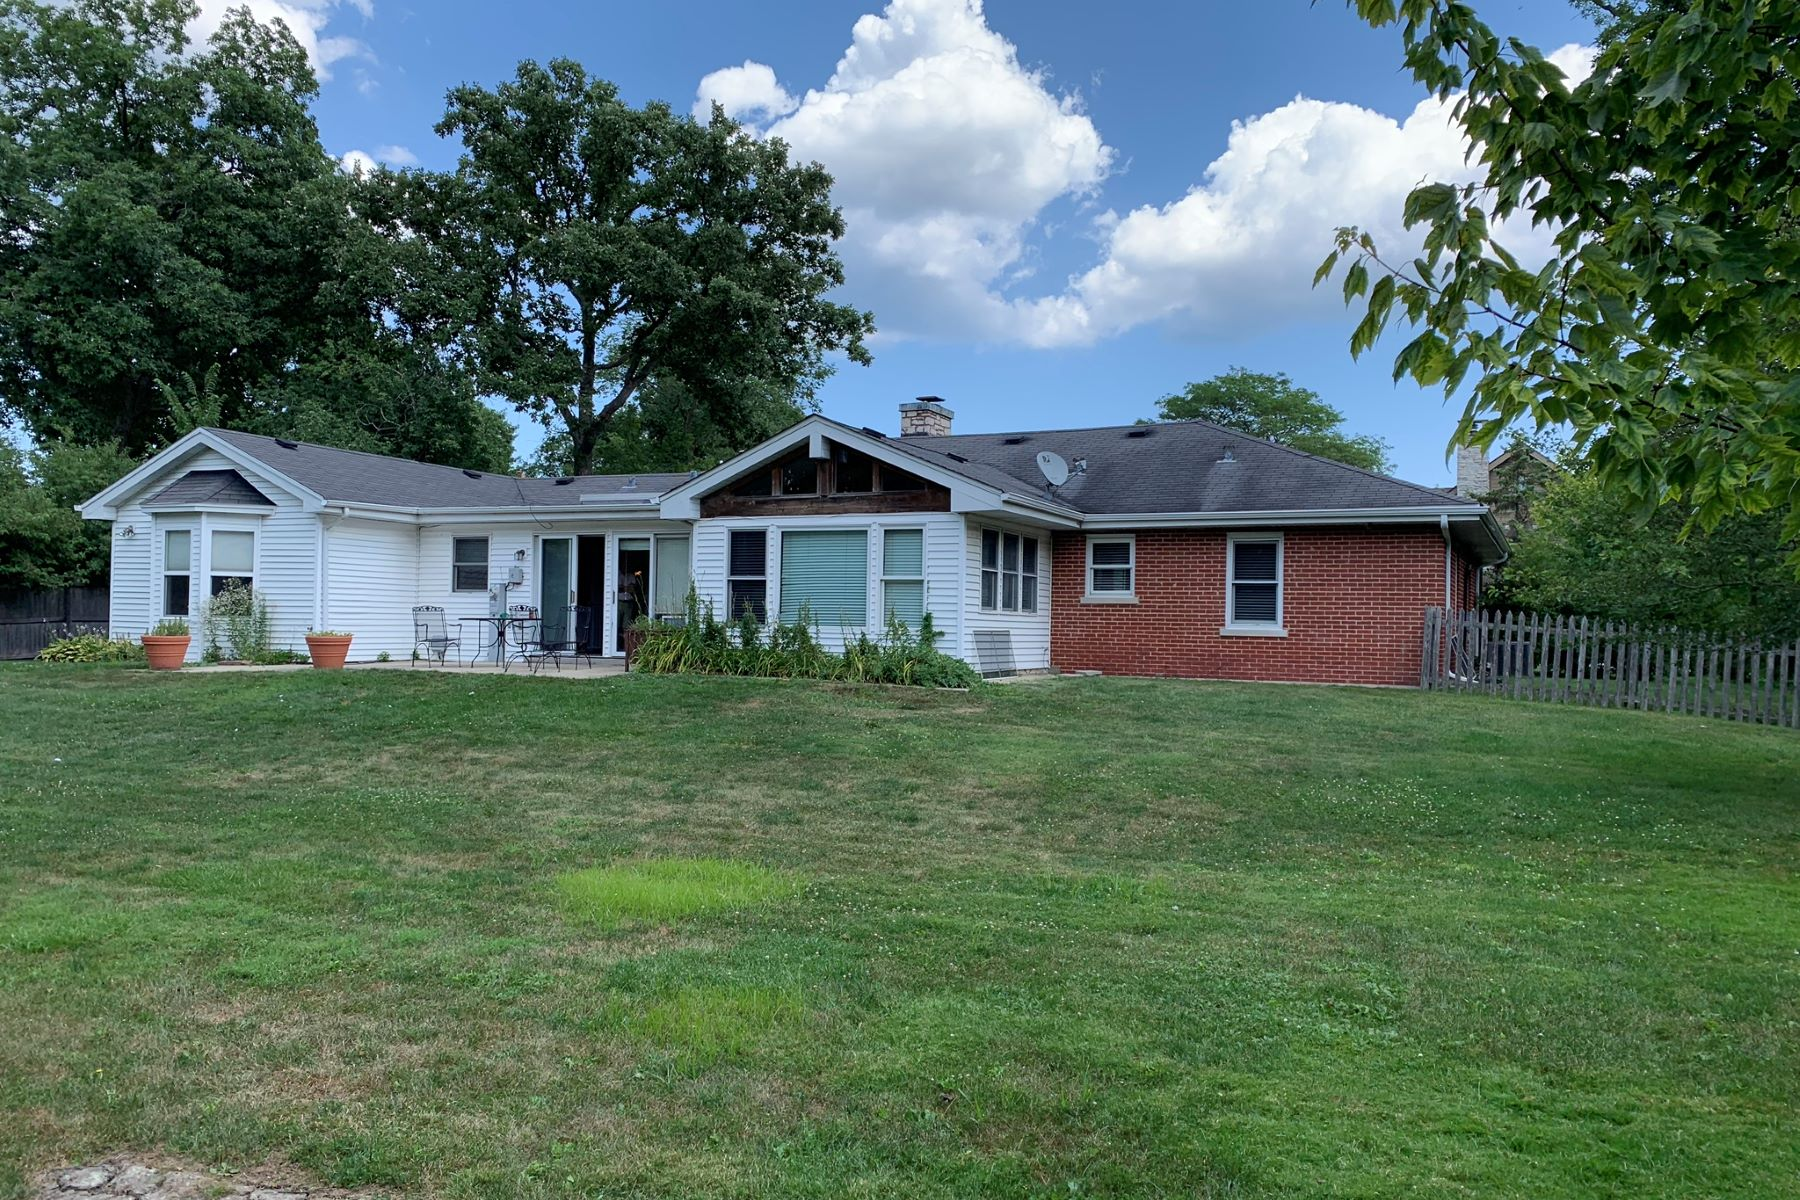 Single Family Homes for Active at Beautiful Sun Drenched Lot. 636 Coronet Road Glenview, Illinois 60025 United States